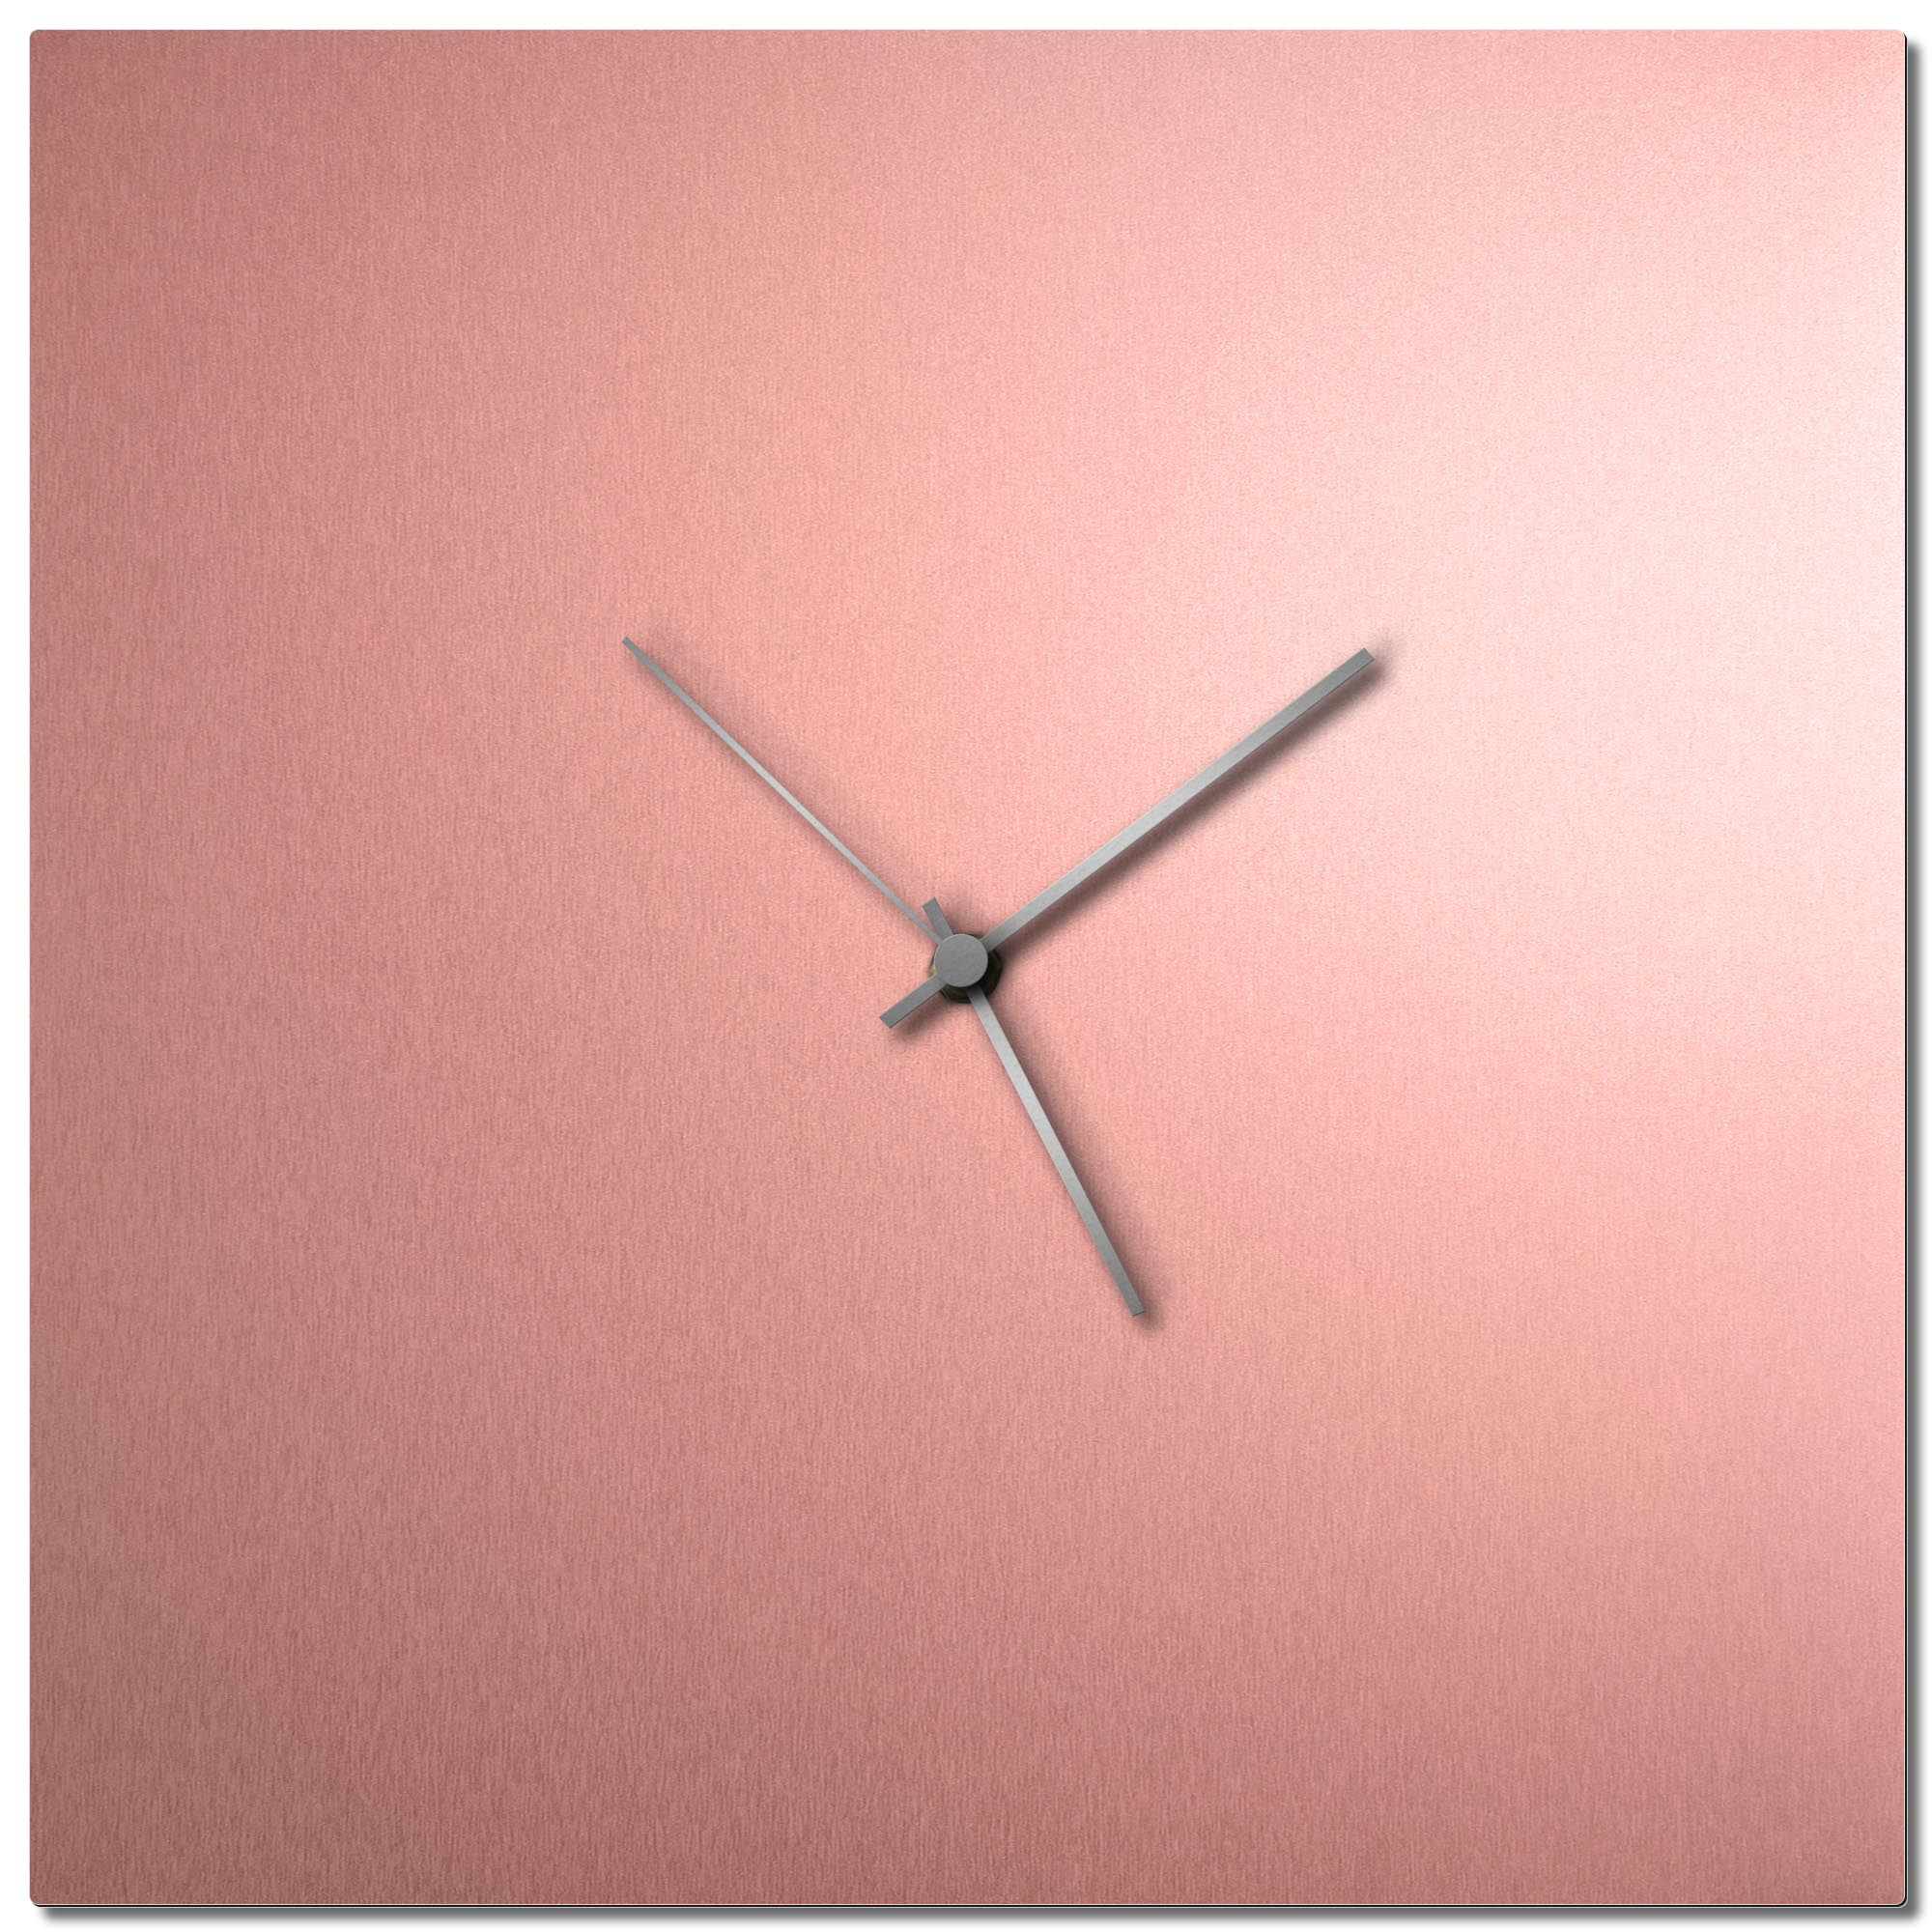 Adam Schwoeppe 'Coppersmith Square Clock Large Silver' Midcentury Modern Style Wall Clock